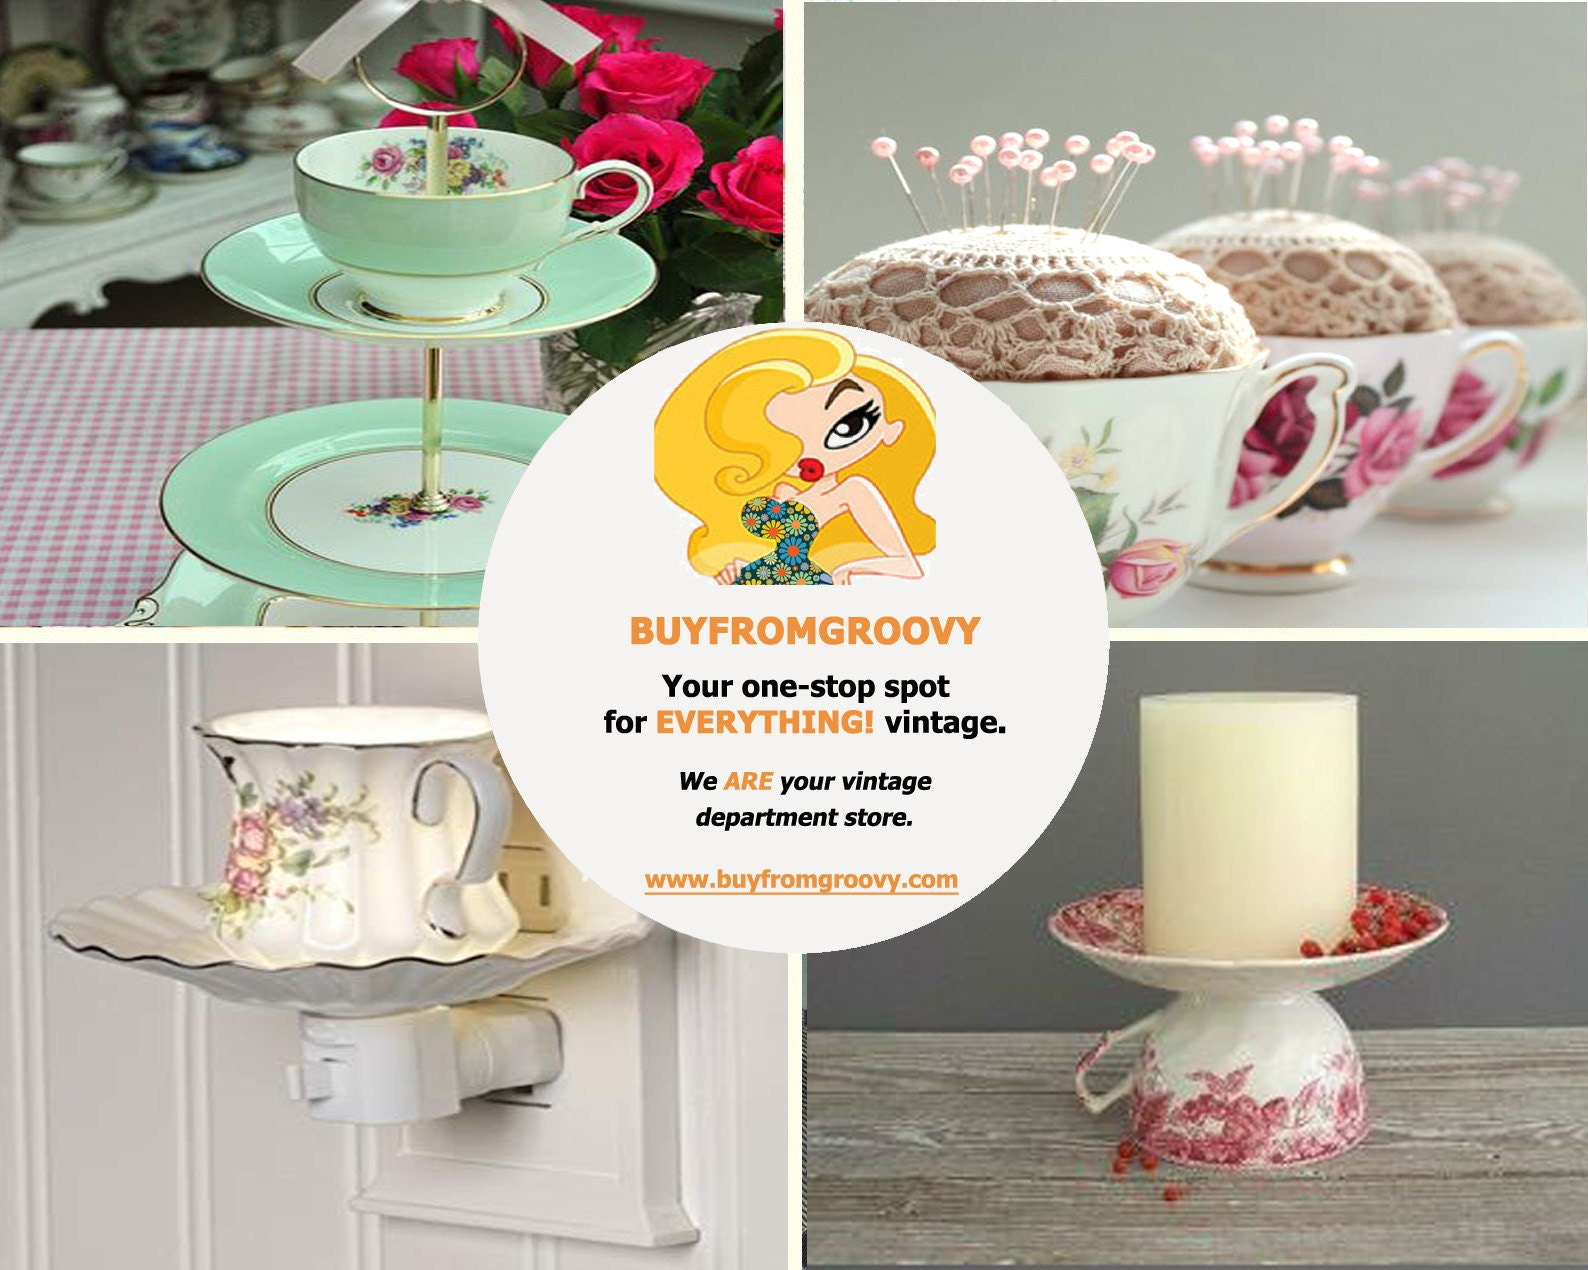 Many creative and beautiful uses for orphaned tea cups and saucers.